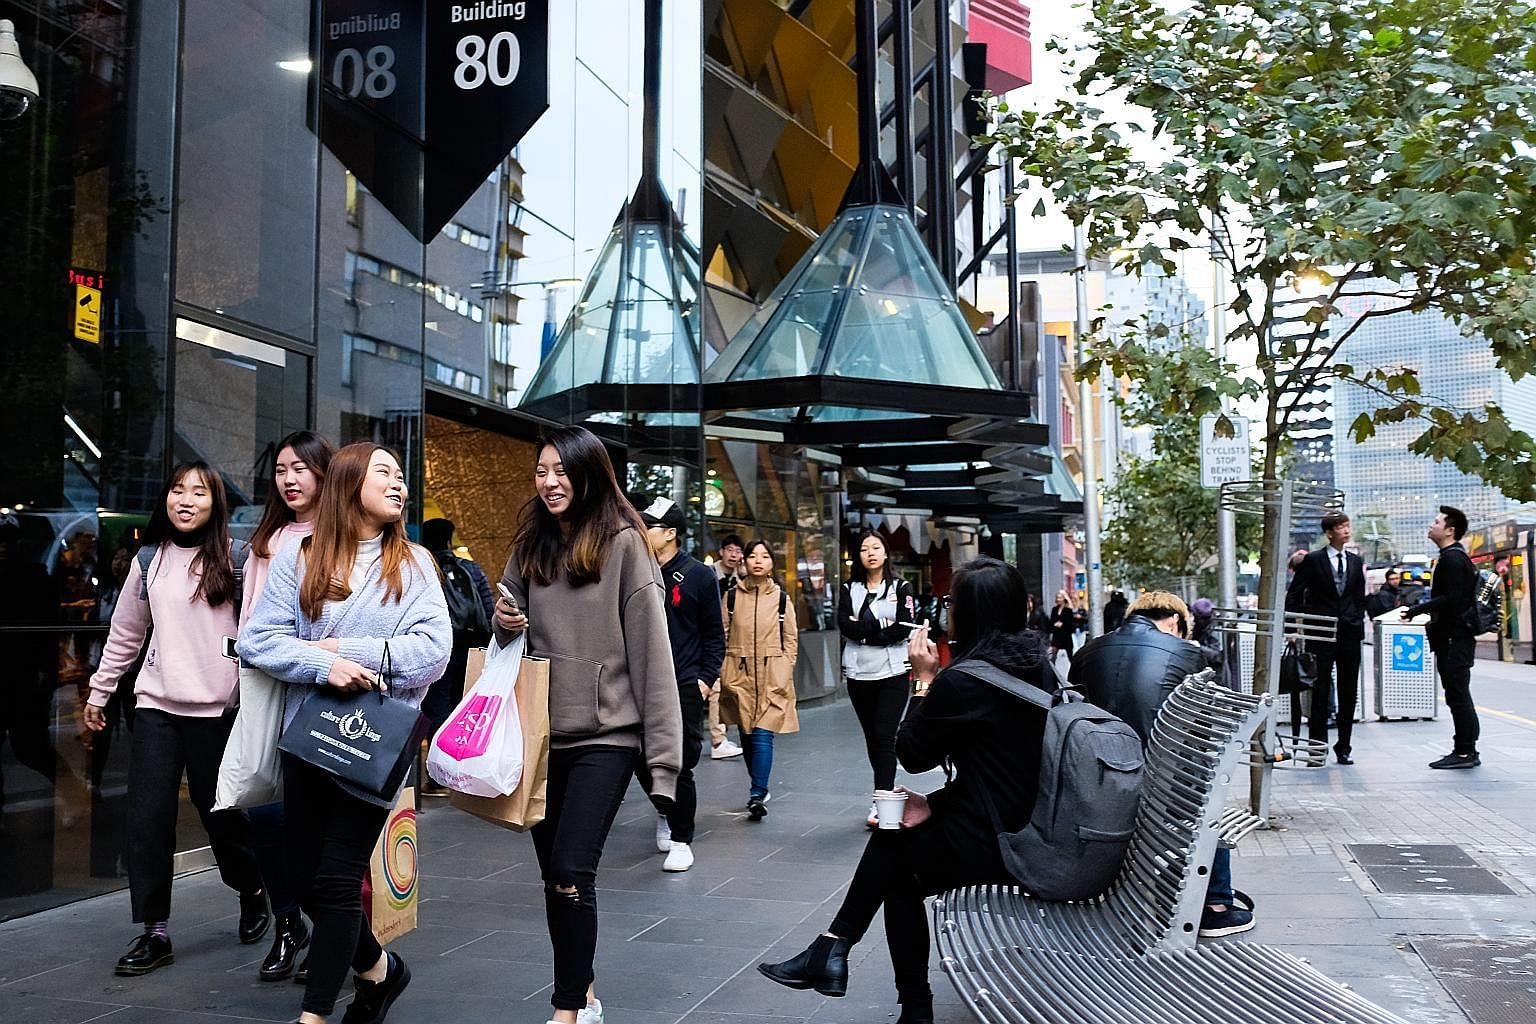 """Anti-Chinese posters were found at the University of Melbourne and Monash University on Monday, with the discovery coming amid an influx of students from mainland China to Australian schools. The posters in awkwardly worded Chinese read: """"Attention!"""